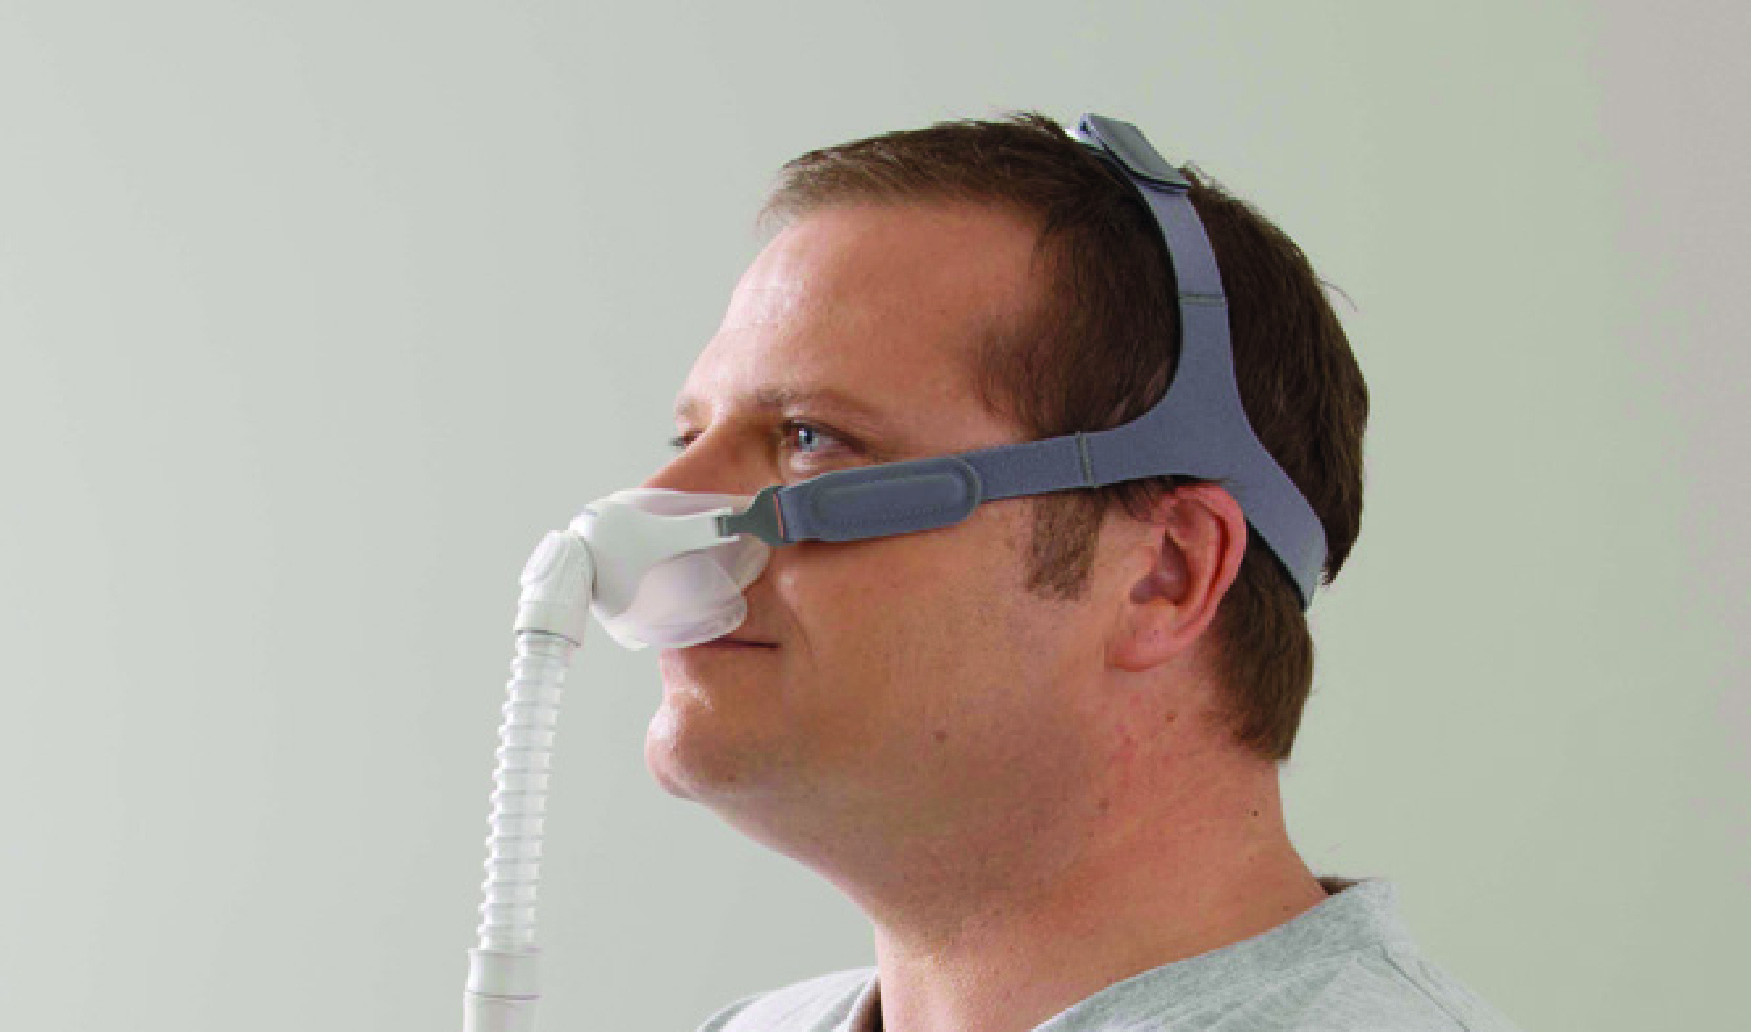 Fisher Amp Paykel Pilairo Q Nasal Pillow Cpap Mask Home